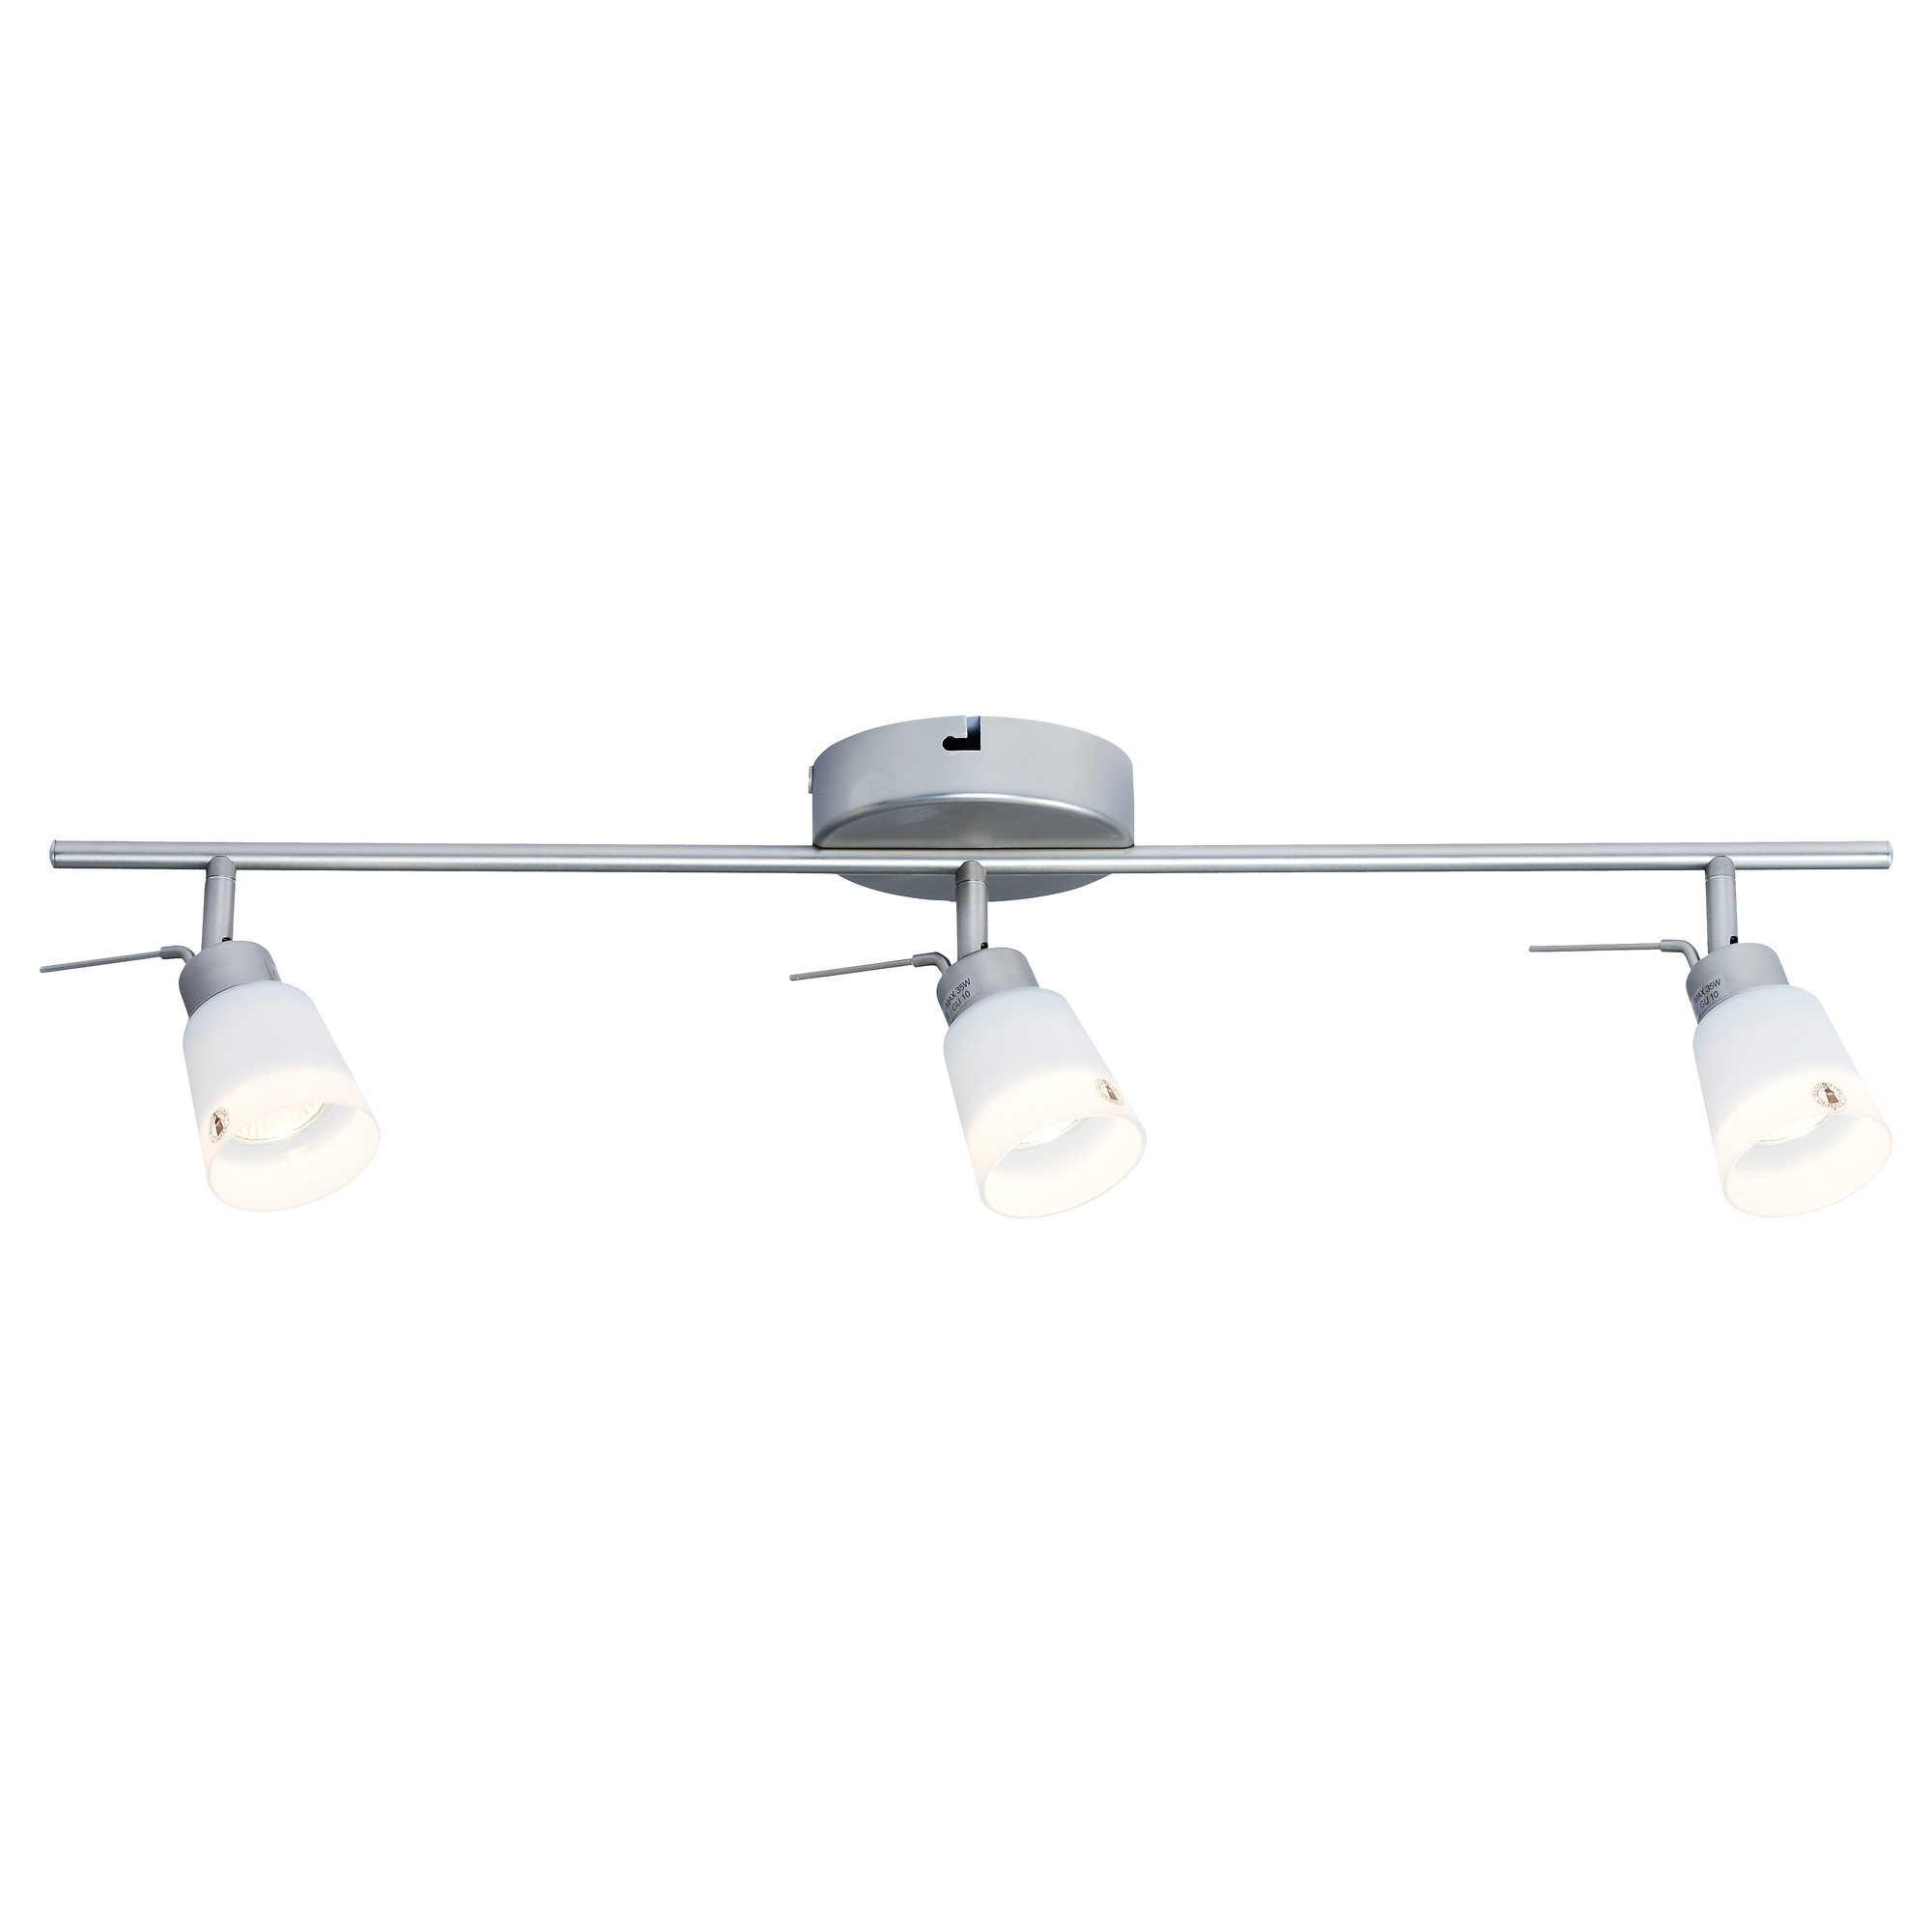 BASISK Ceiling Track Spotlights Nickel Plated White HOME MUST - Ceiling lights suitable for kitchens